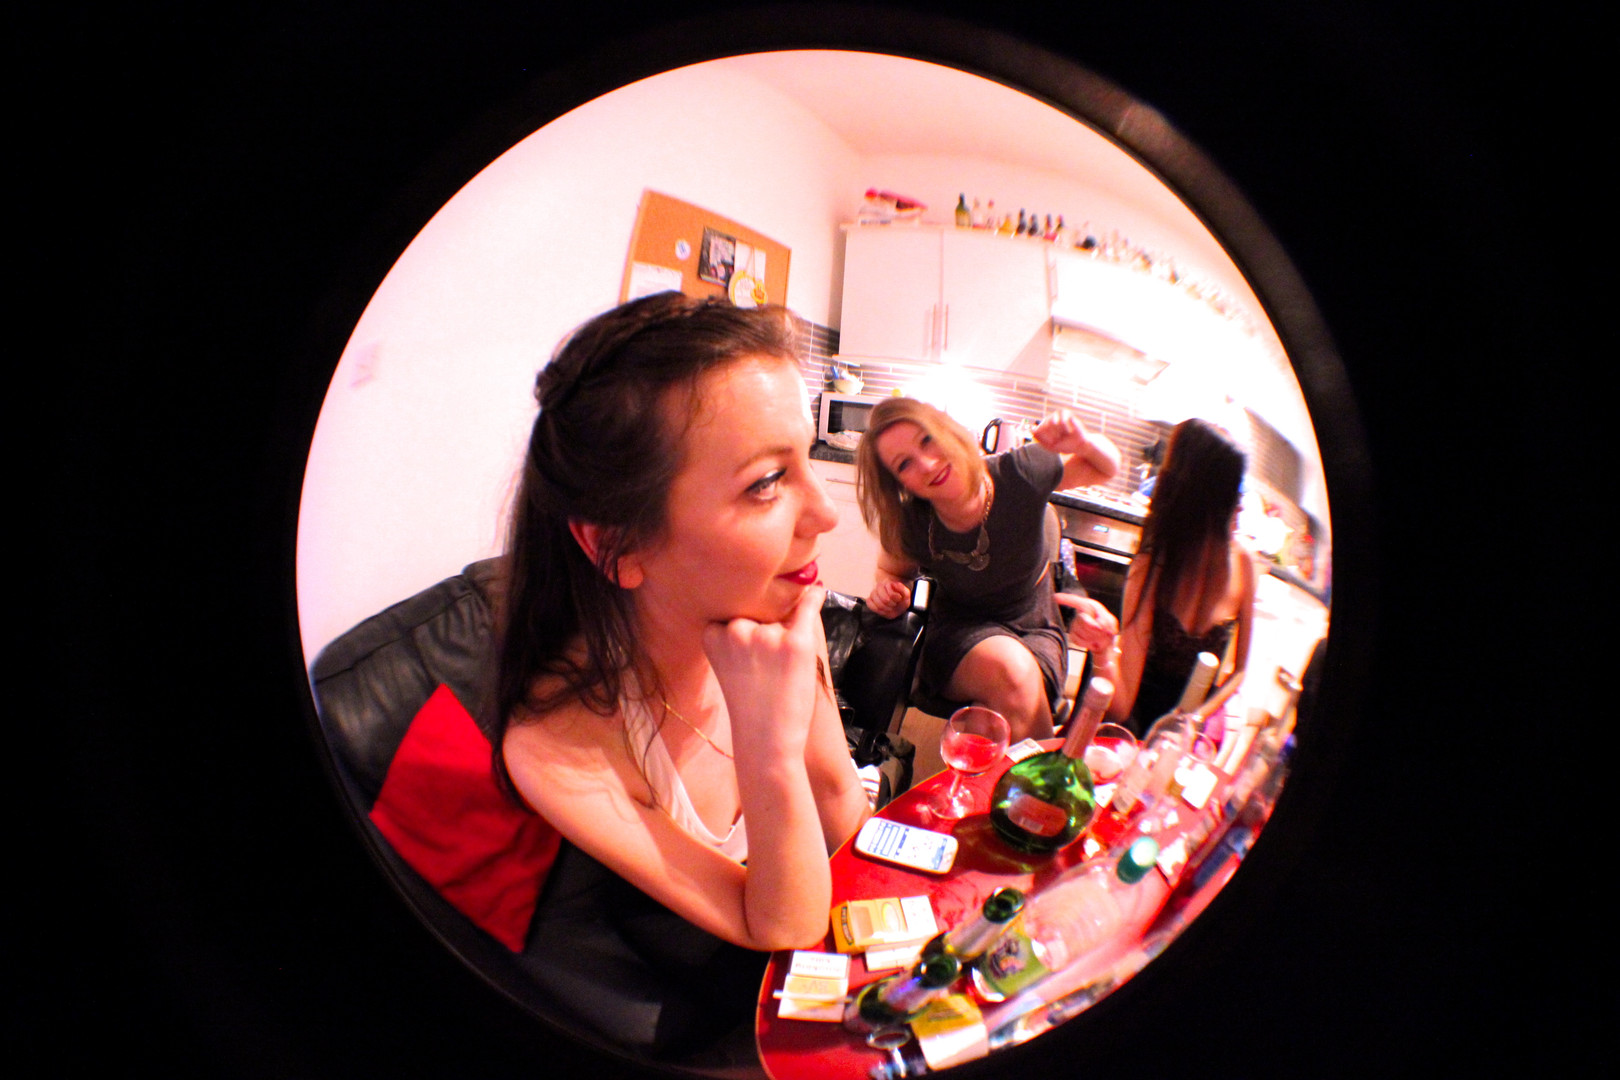 Flickr - Party 15